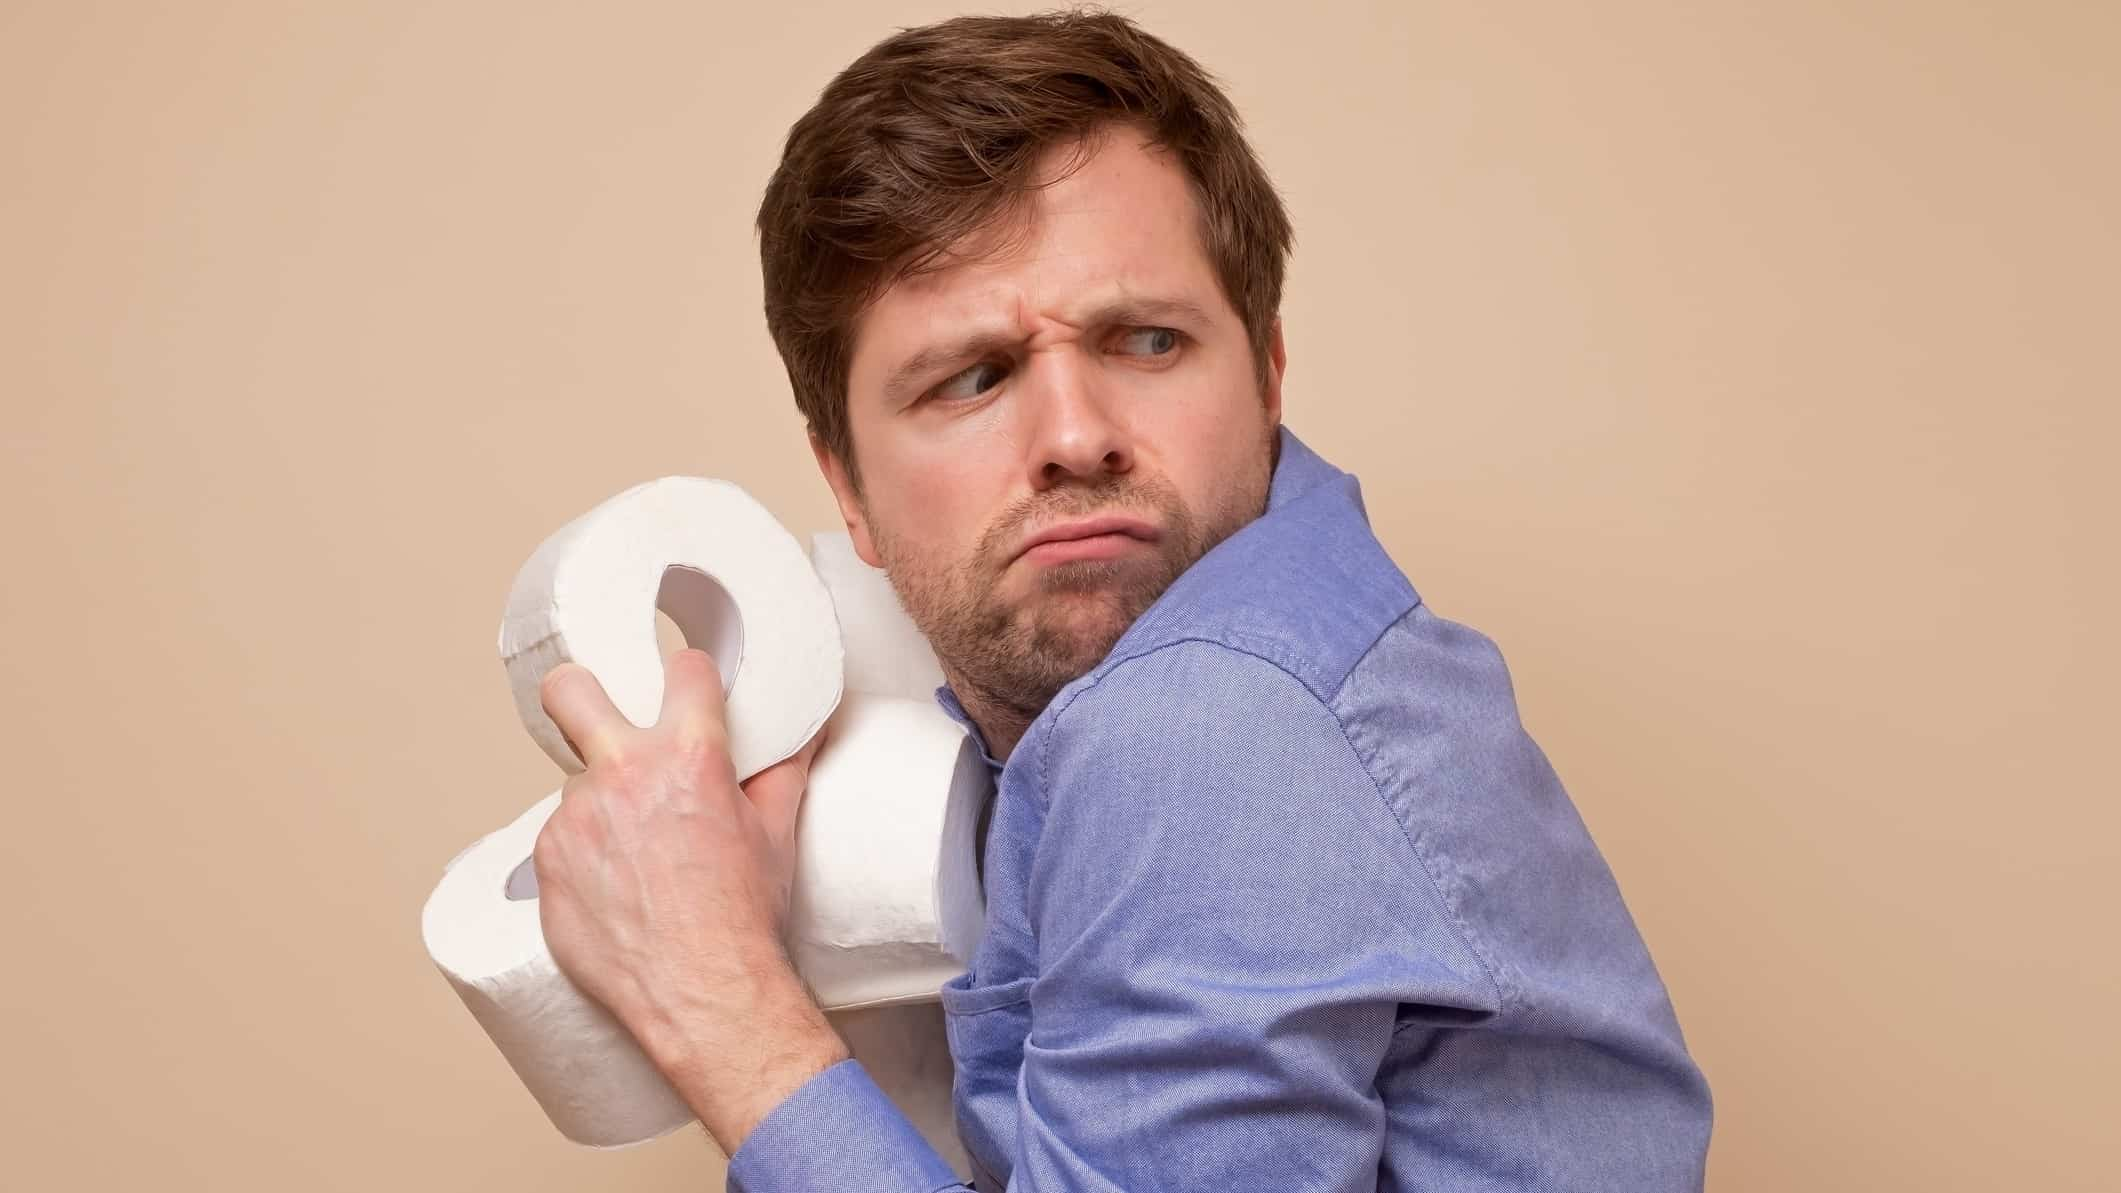 toilet paper asx share price represented by man clutching rolls of toilet paper close to his chest